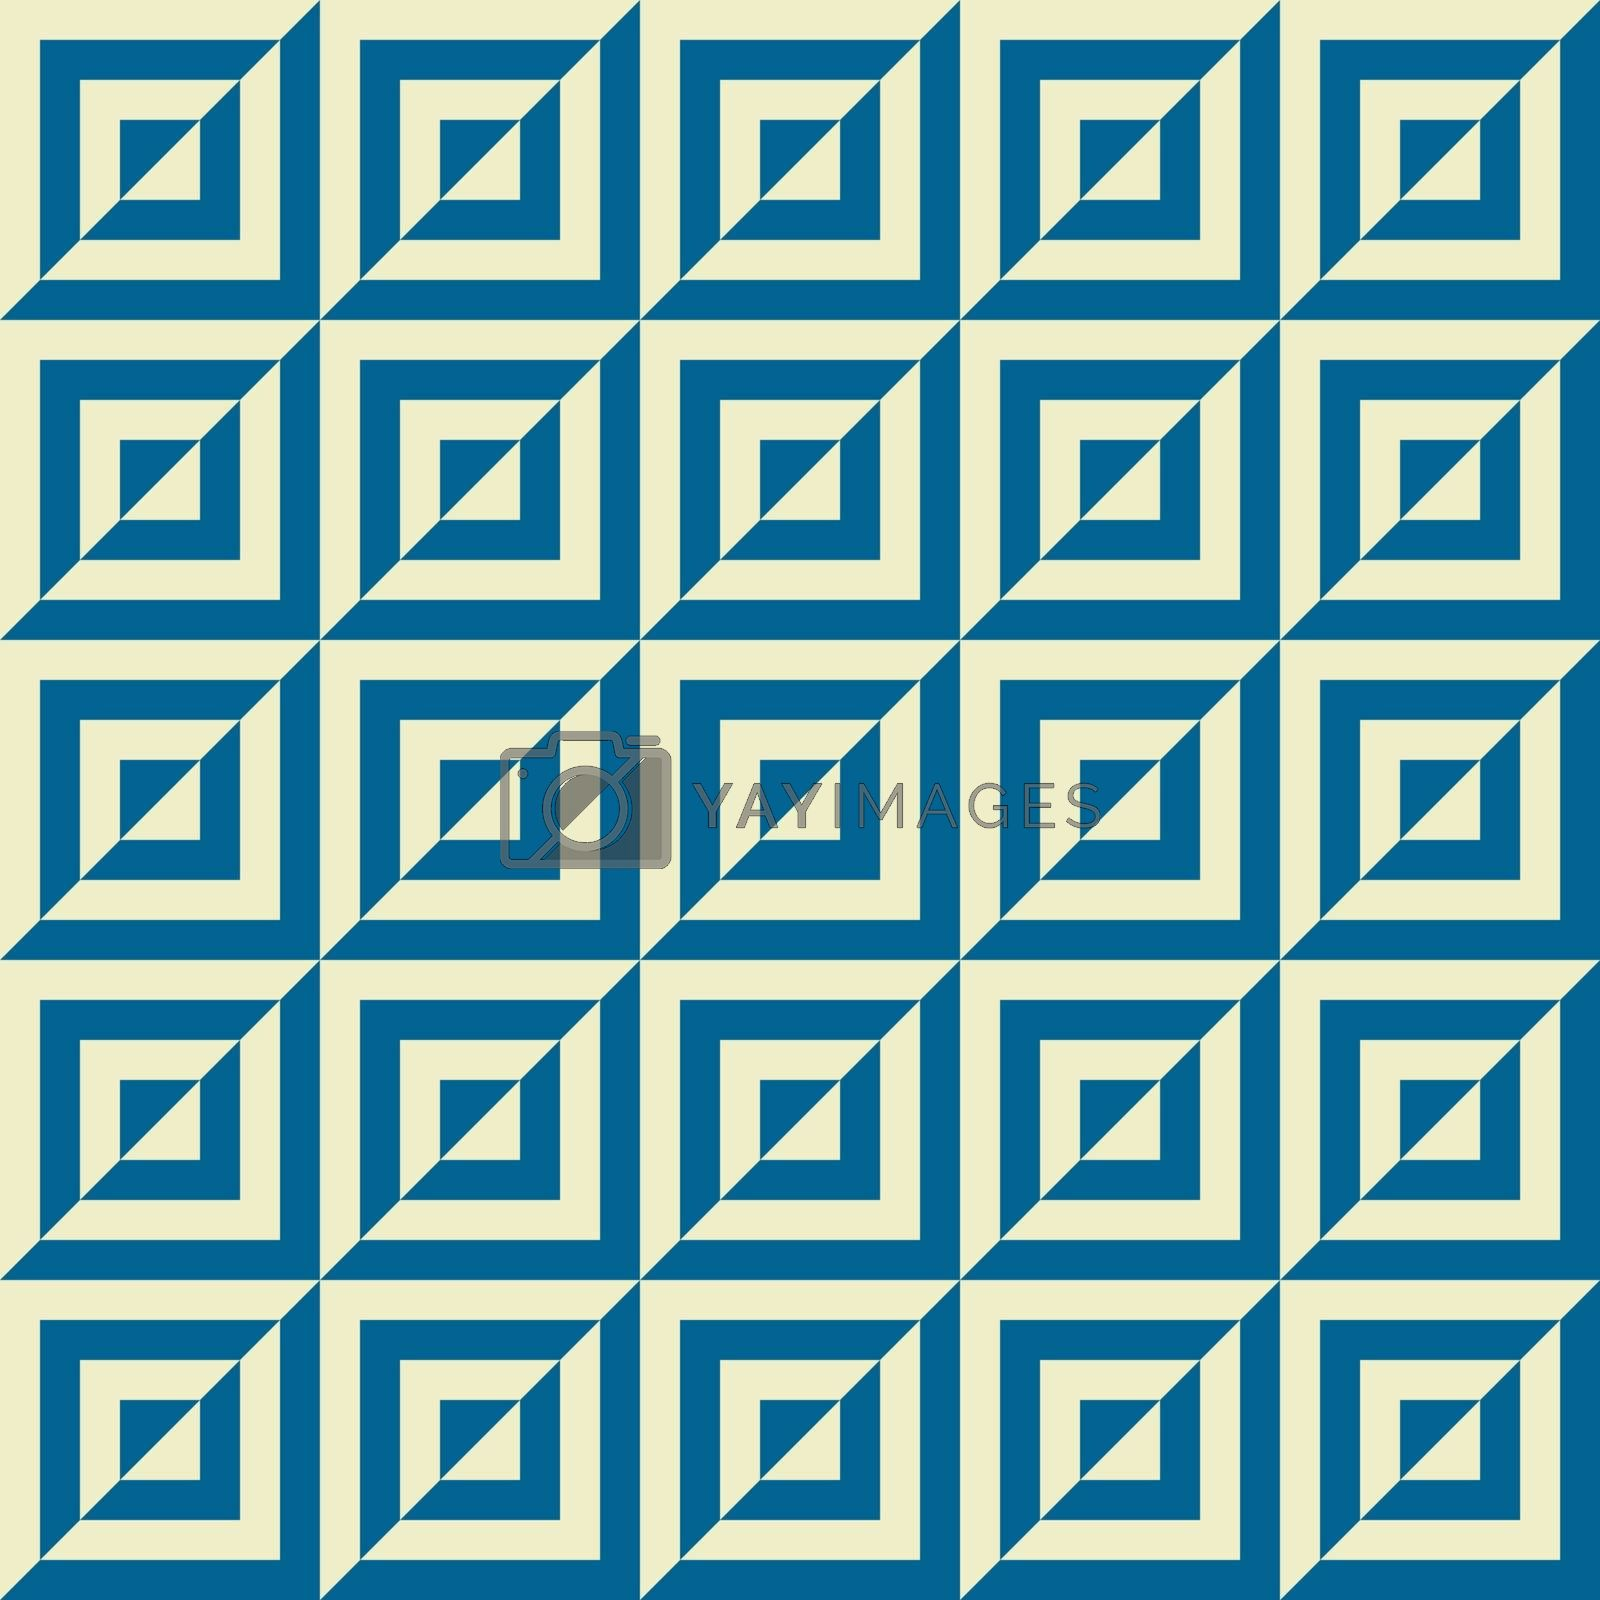 Vintage seamless background of squares. Vector illustration.